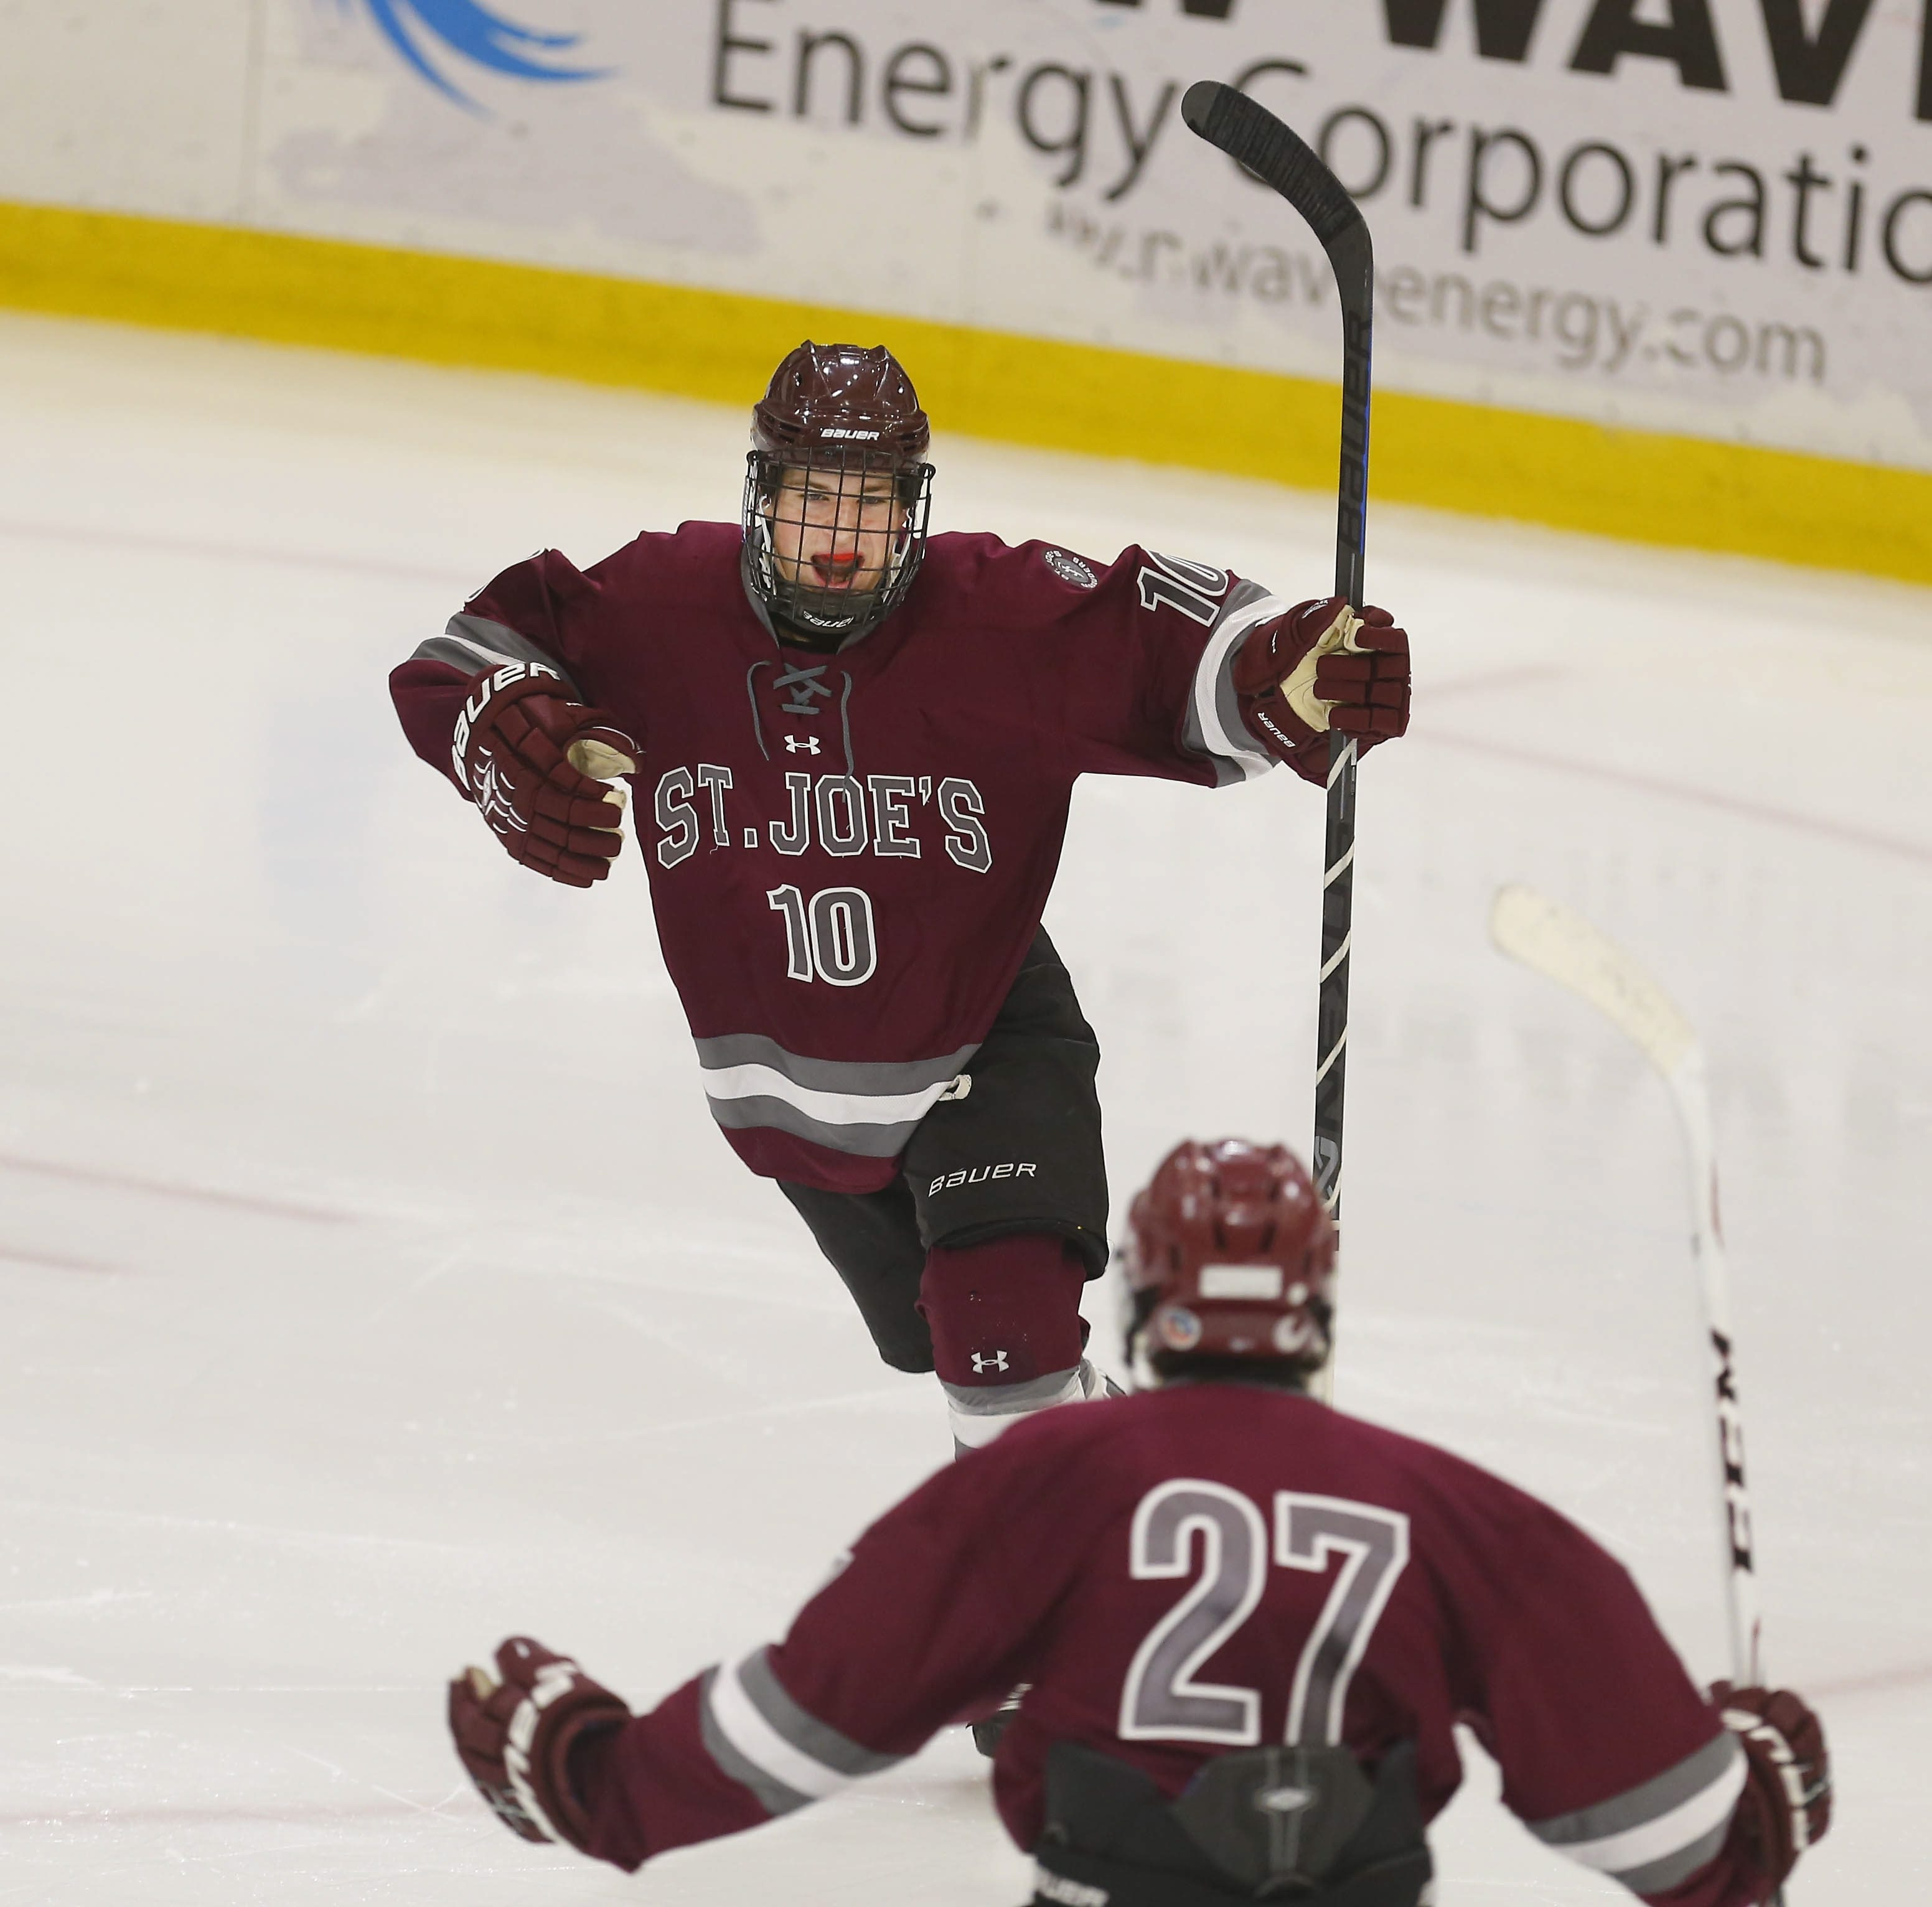 St. Joe's Michael Greco (10) celebrates his team's fourth goal of the game with Nicholas Wahler (27) Monday at HarborCenter. St. Joe's defeated rival Canisius, 4-3.